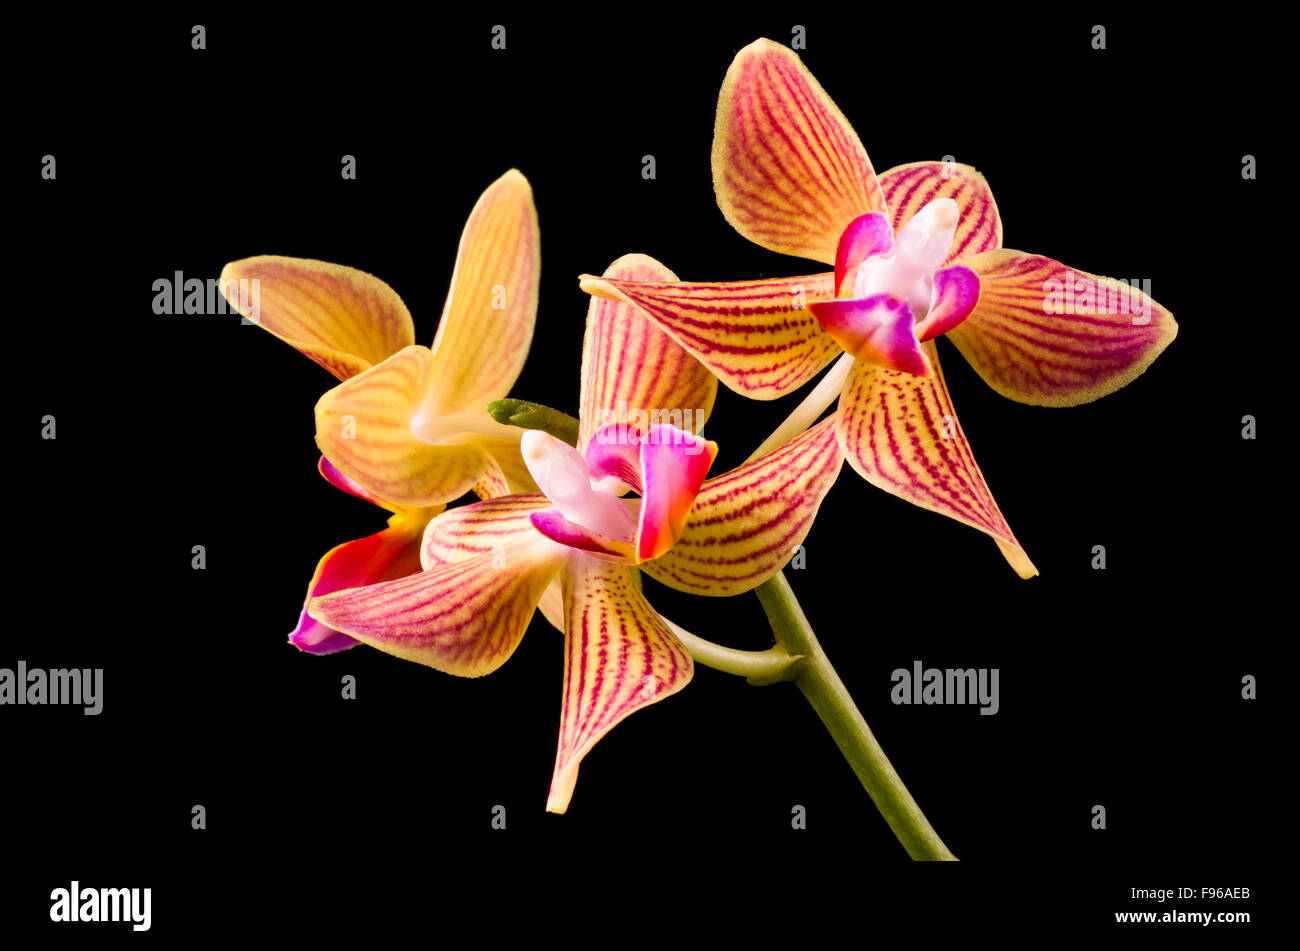 Orchid flowers, Orchidaceae, with a black background. - Stock Image